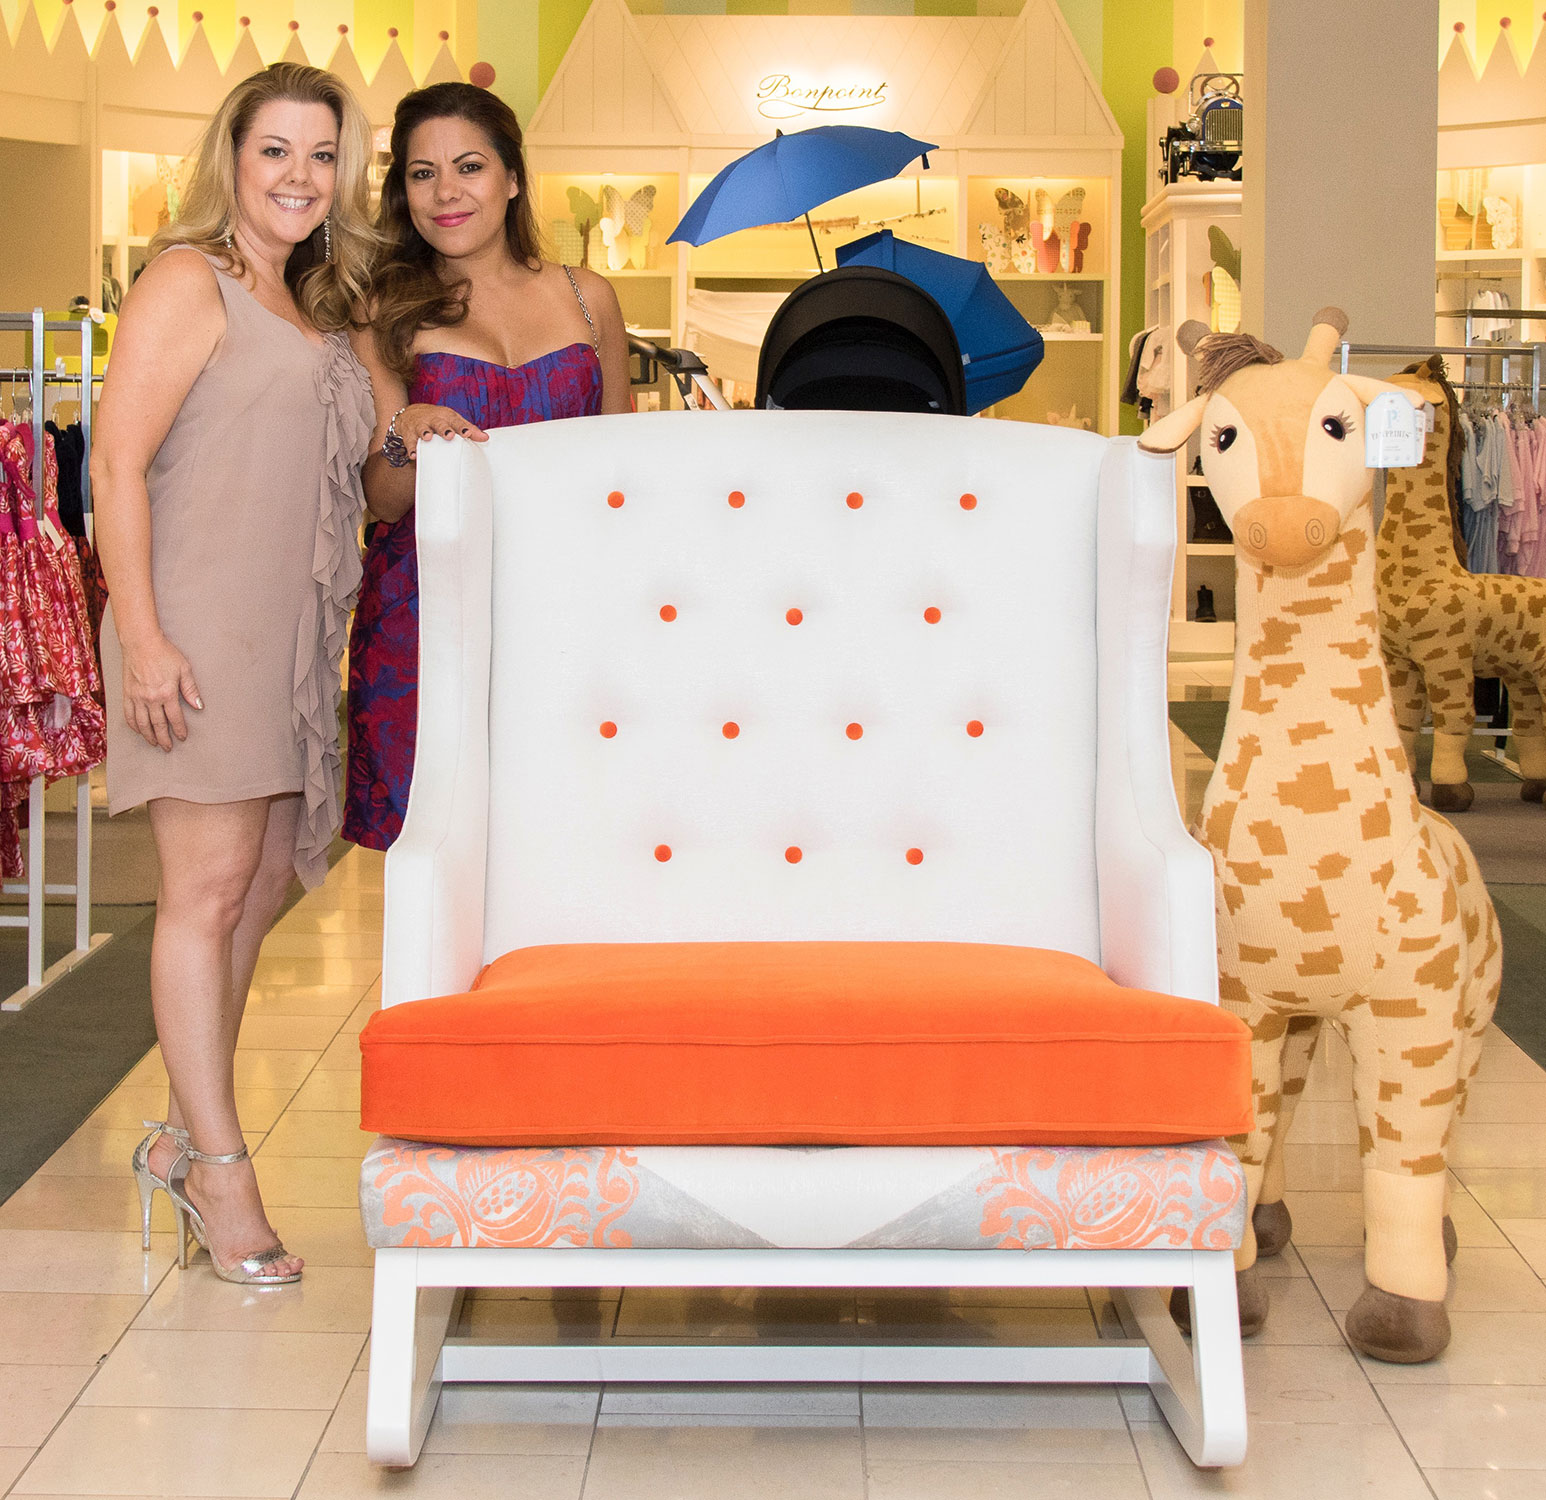 """ART OF DESIGN - In 2016, Audra designed this chair and a half that she lovingly named the """"Suite Dreams Baby Rocker"""", which symbolized the cherished bonding time between parents and their newborn baby.Several designers created a chair and all were auctioned off at this charity event, which was located in Newport Beach, California.All donations benefited the Illumination Foundation, an organization which supports homeless children and families throughout Southern California."""